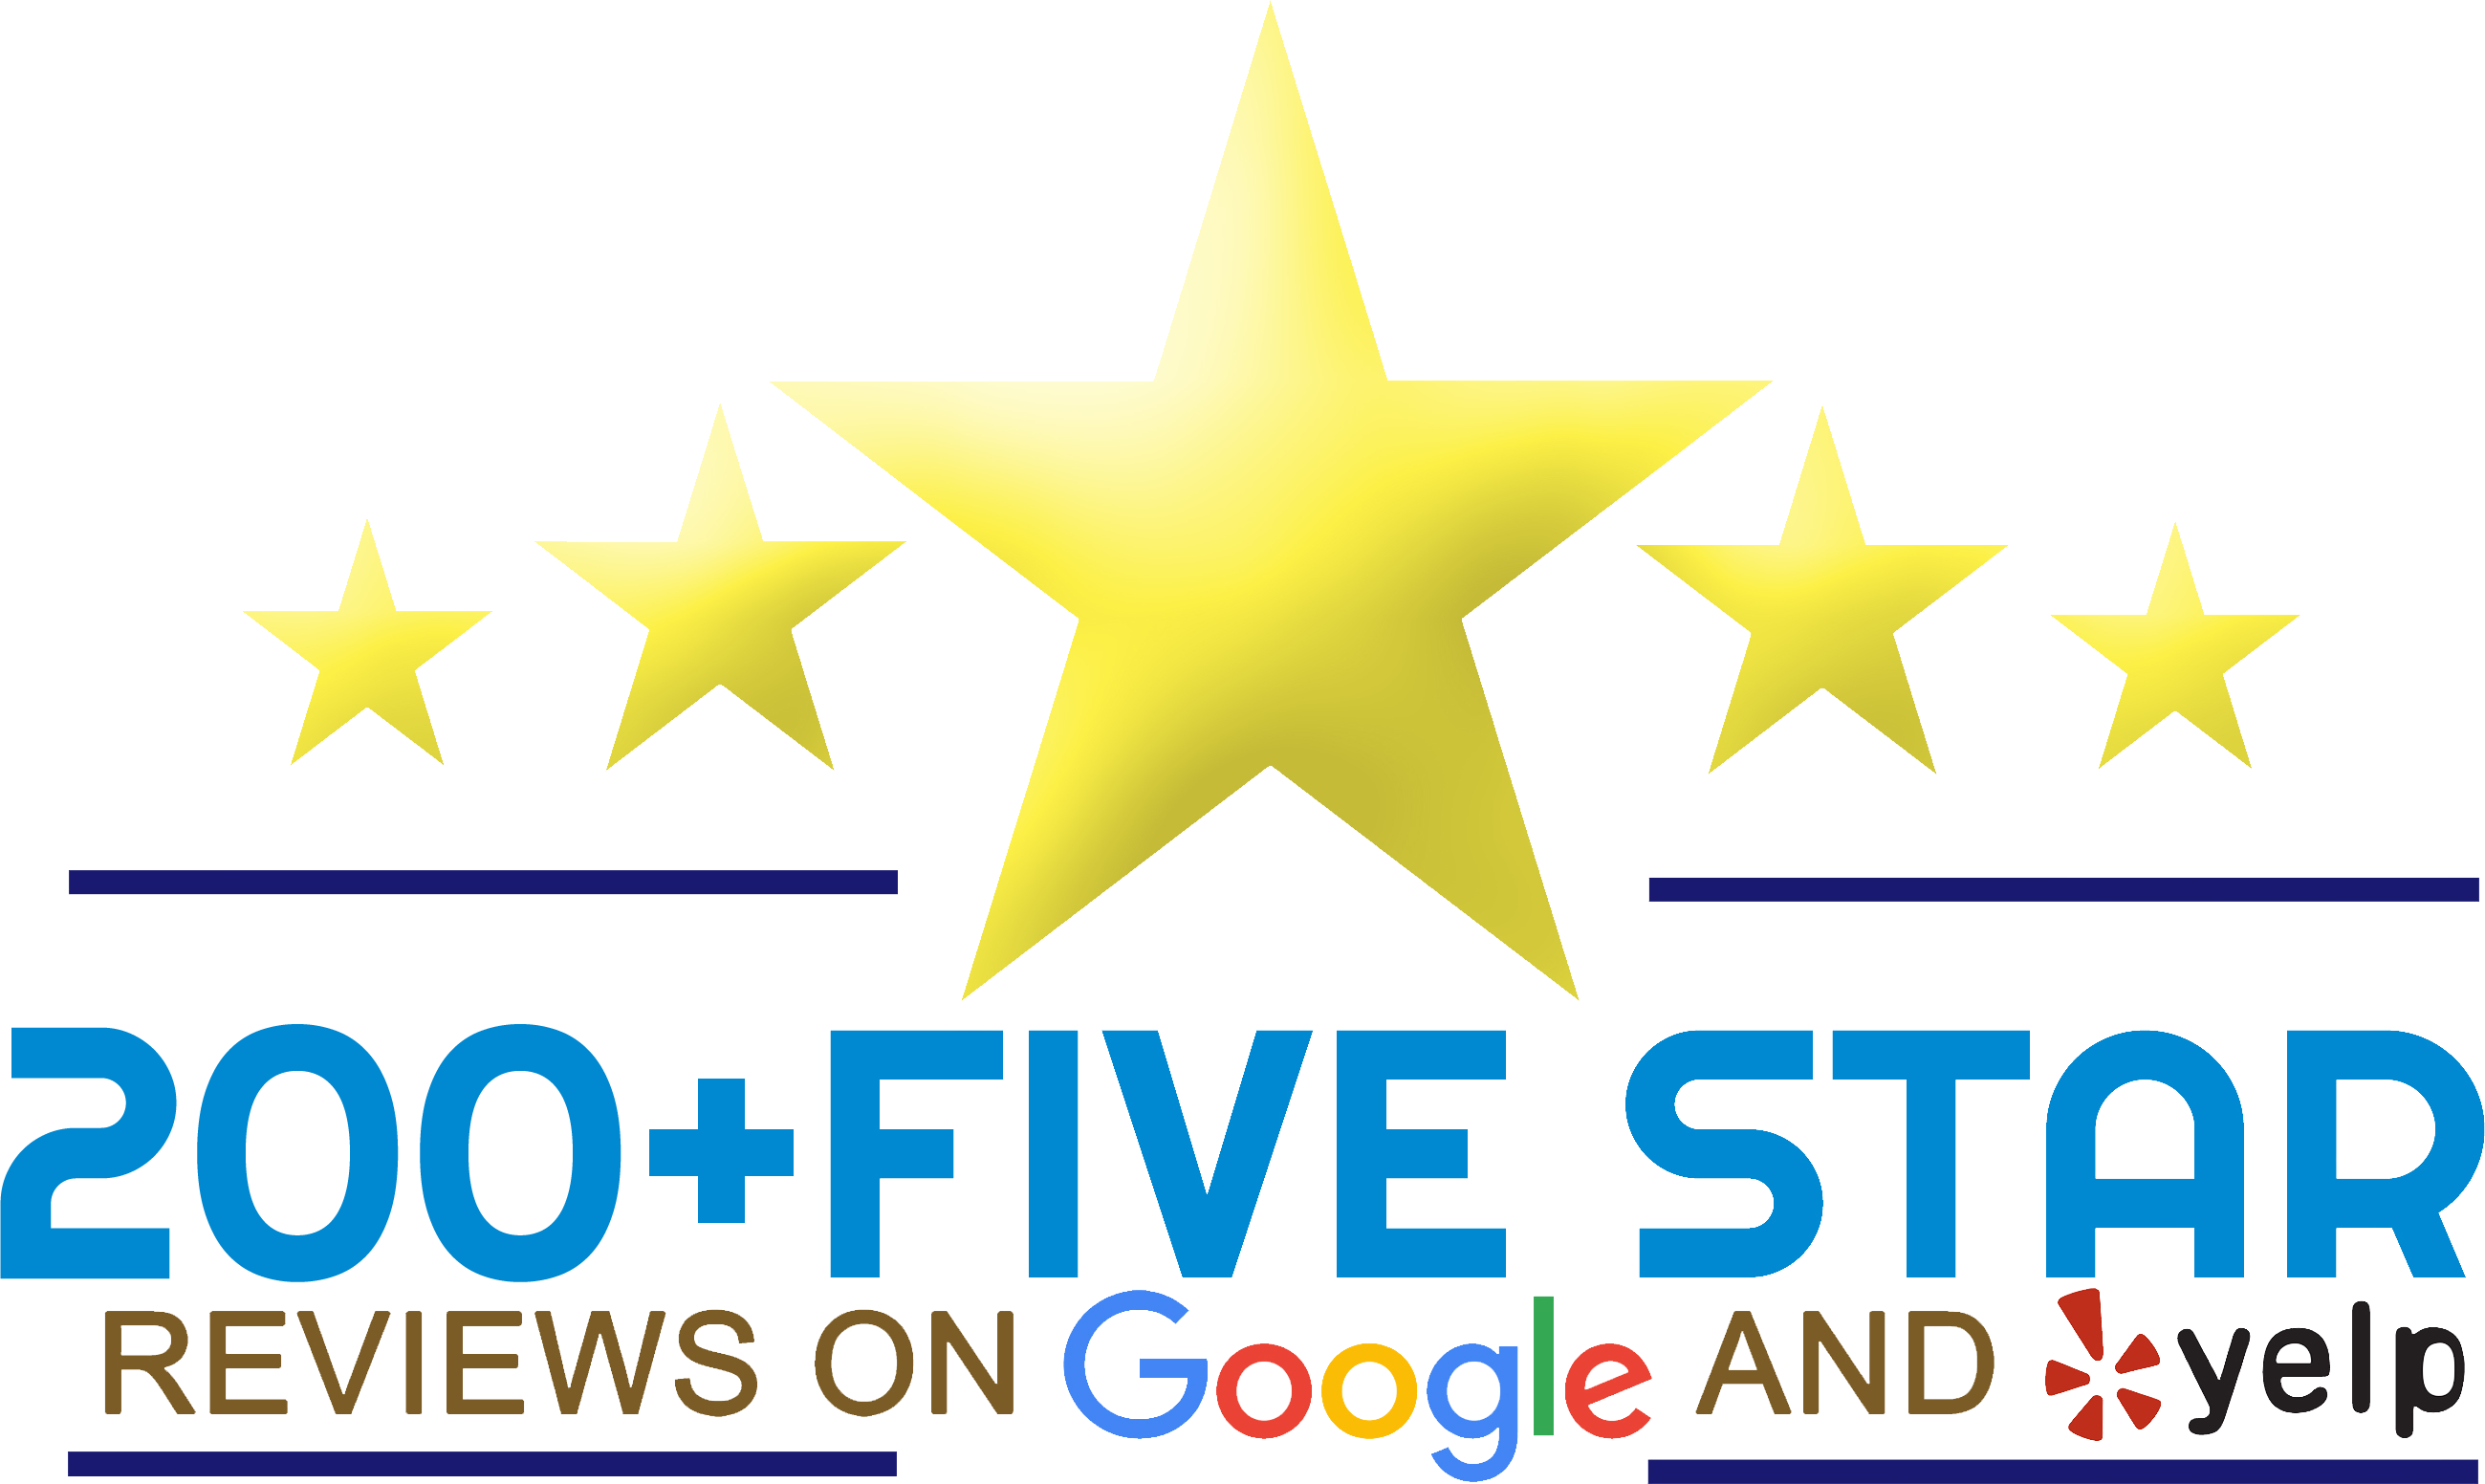 Over 200 five star reviews on Google